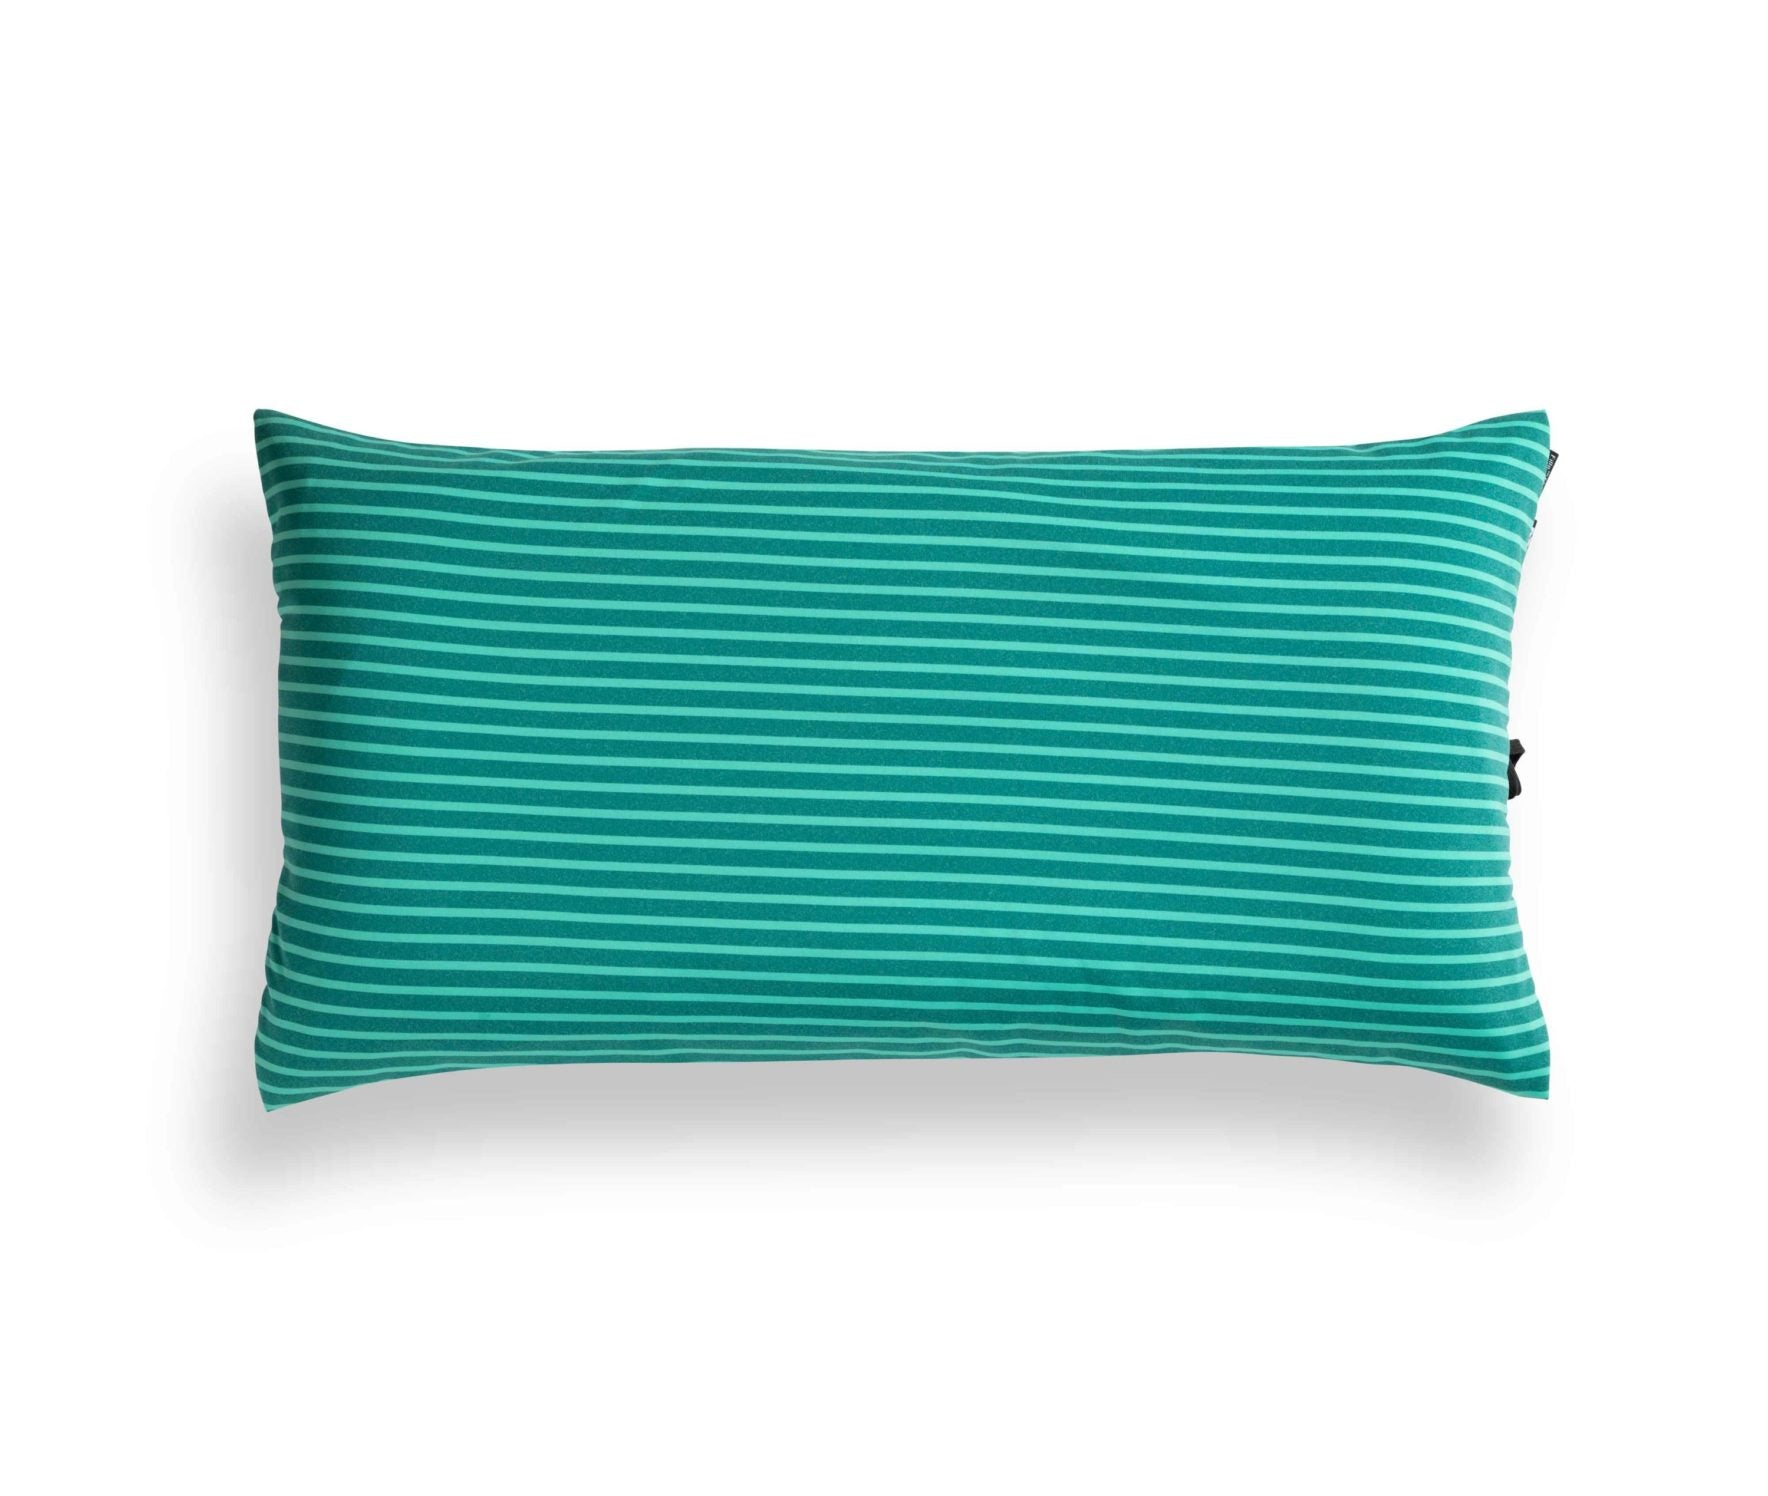 Nemo Fillo Elite Luxury Backpacking Pillow - Saphire Stripe